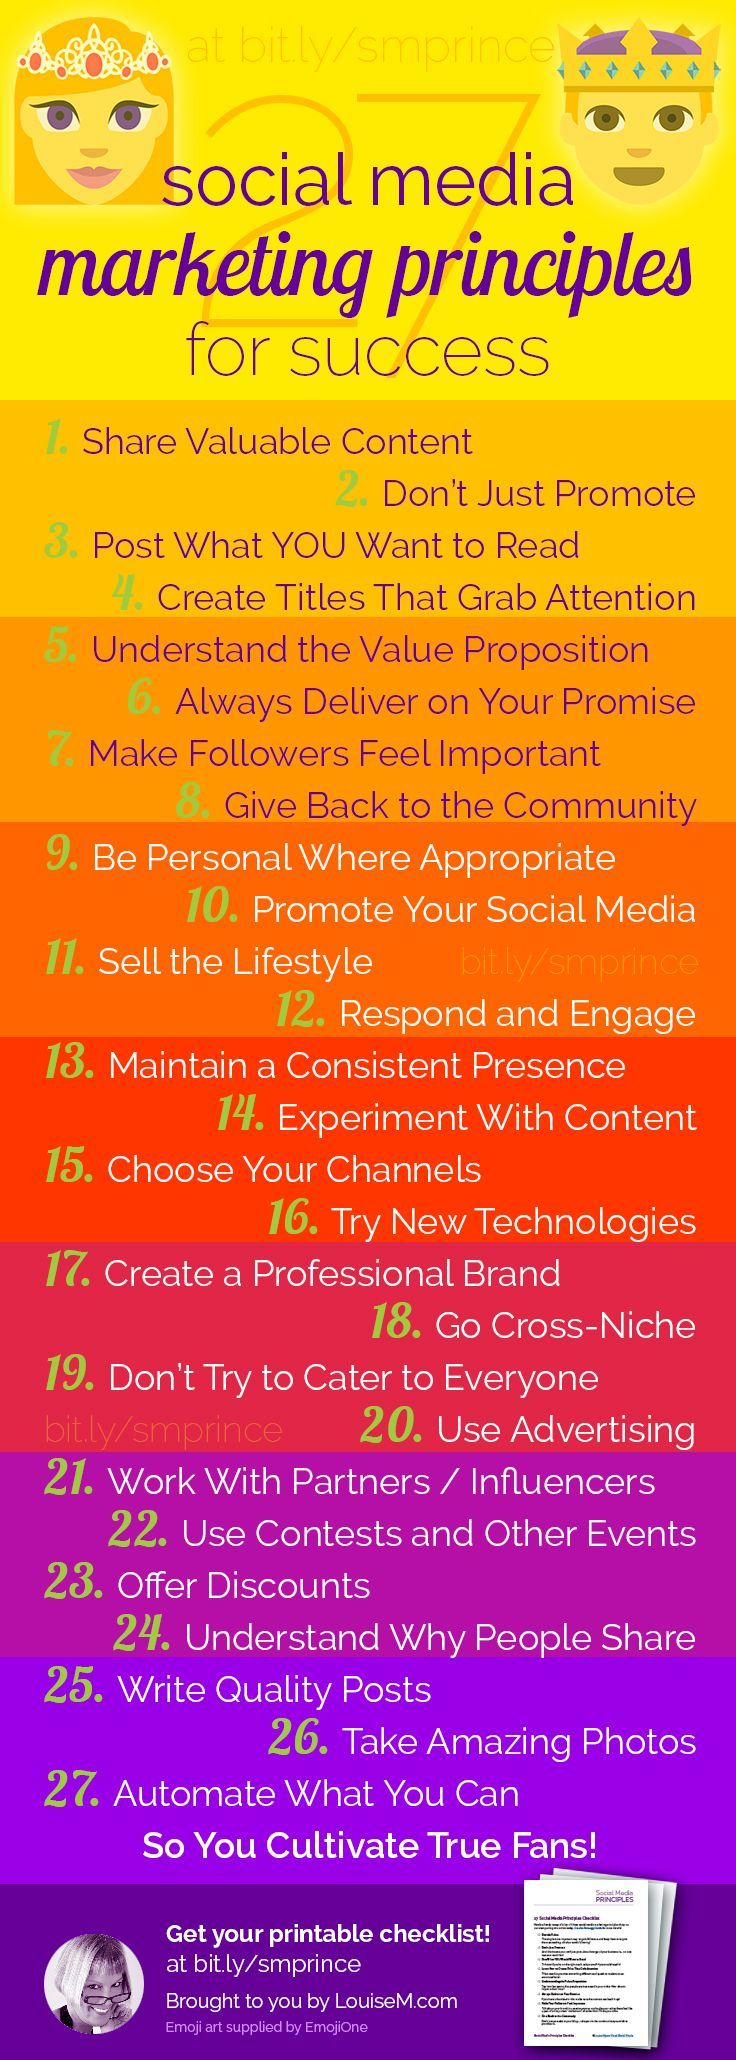 27 Principles for a Successful Social Media Marketing Strategy [Infographic]